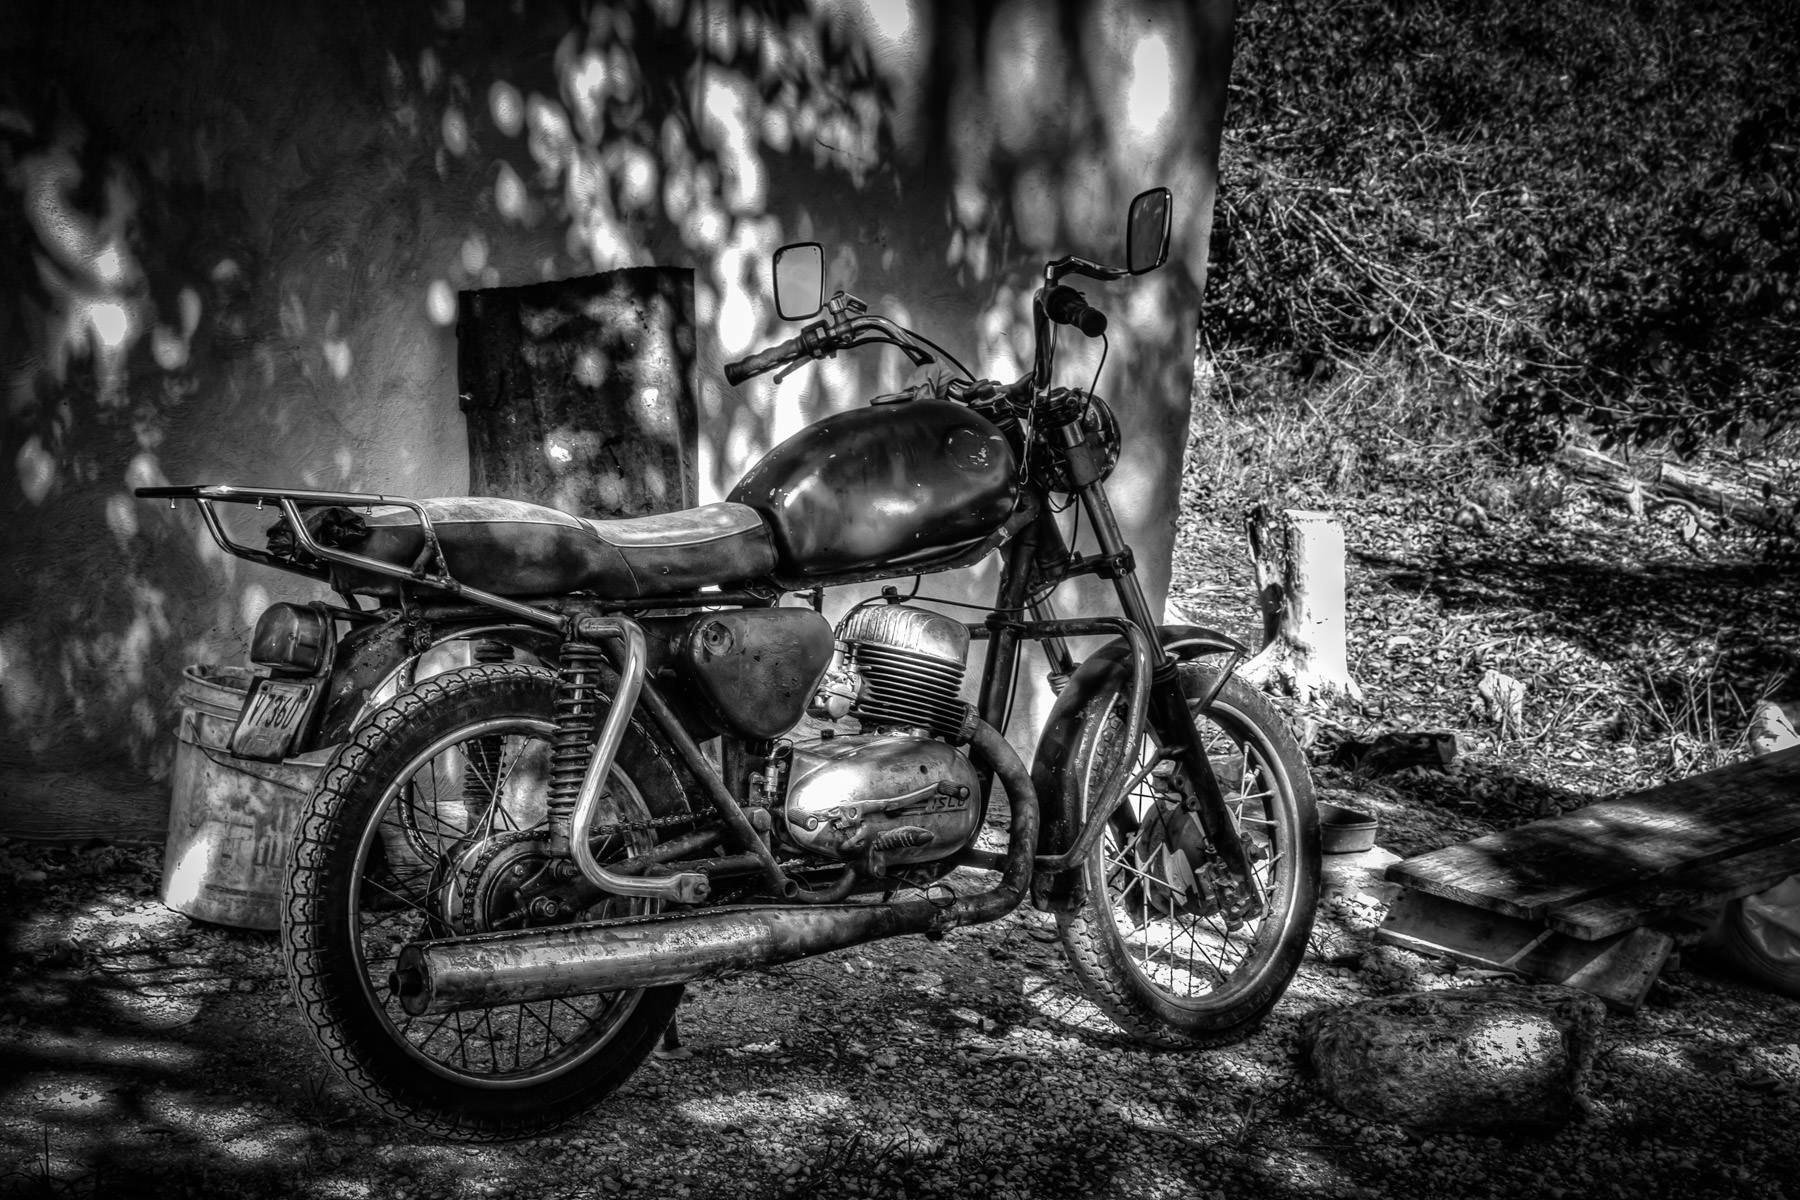 A rusted motorcycle parked outside a shed at the Mayan archaeological site of Xcambo, Yucatán, Mexico.